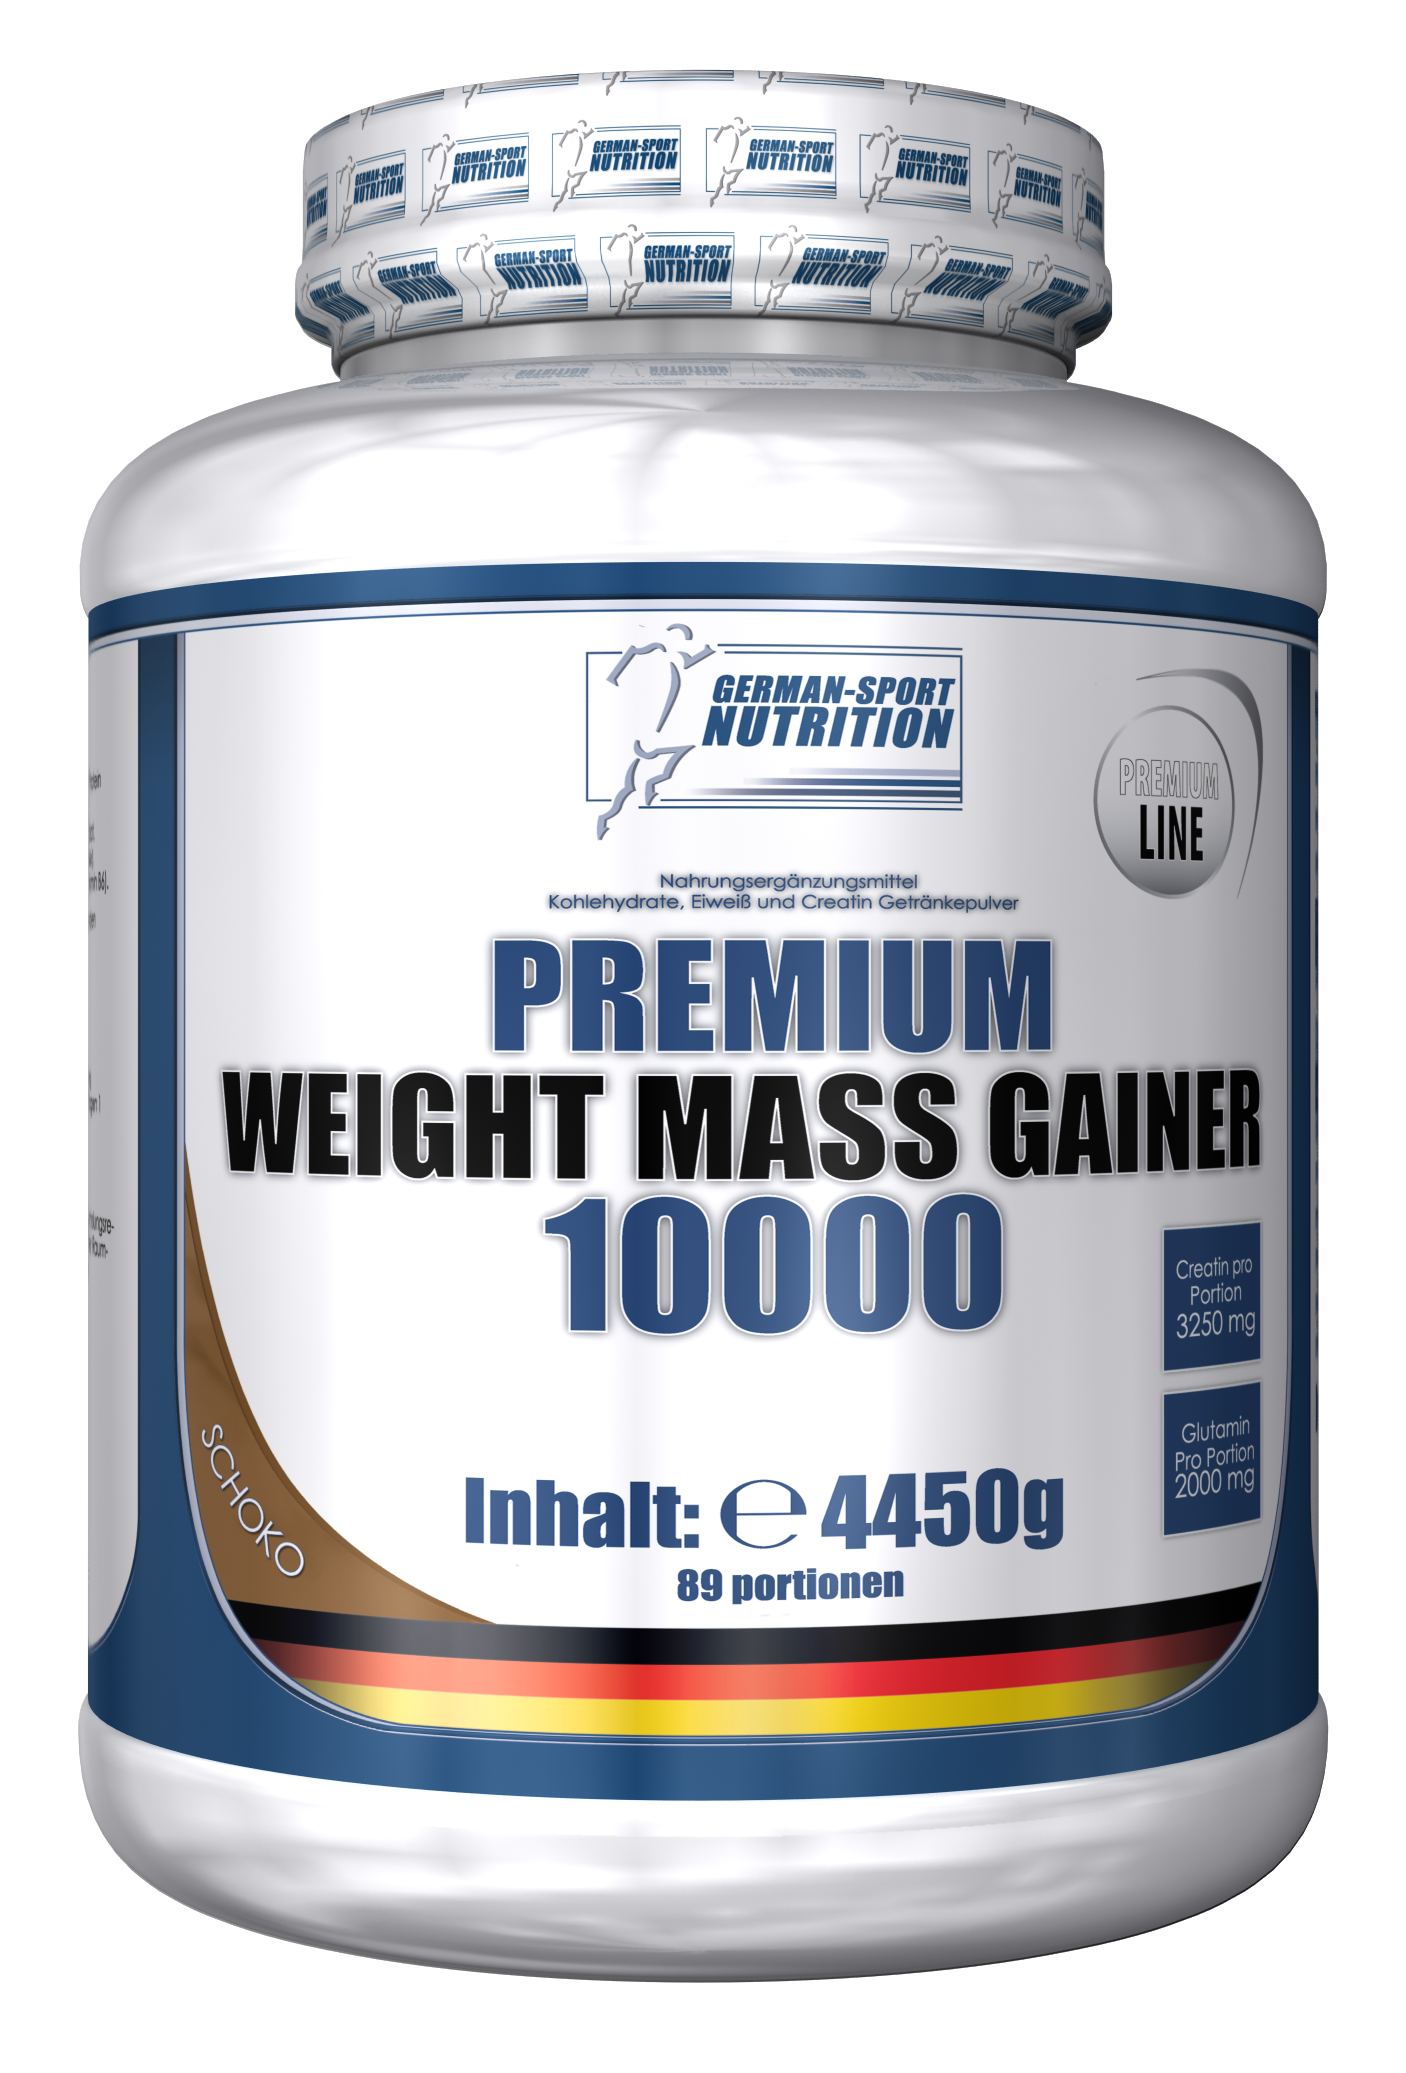 Weight Gainer - 10000, 4450g